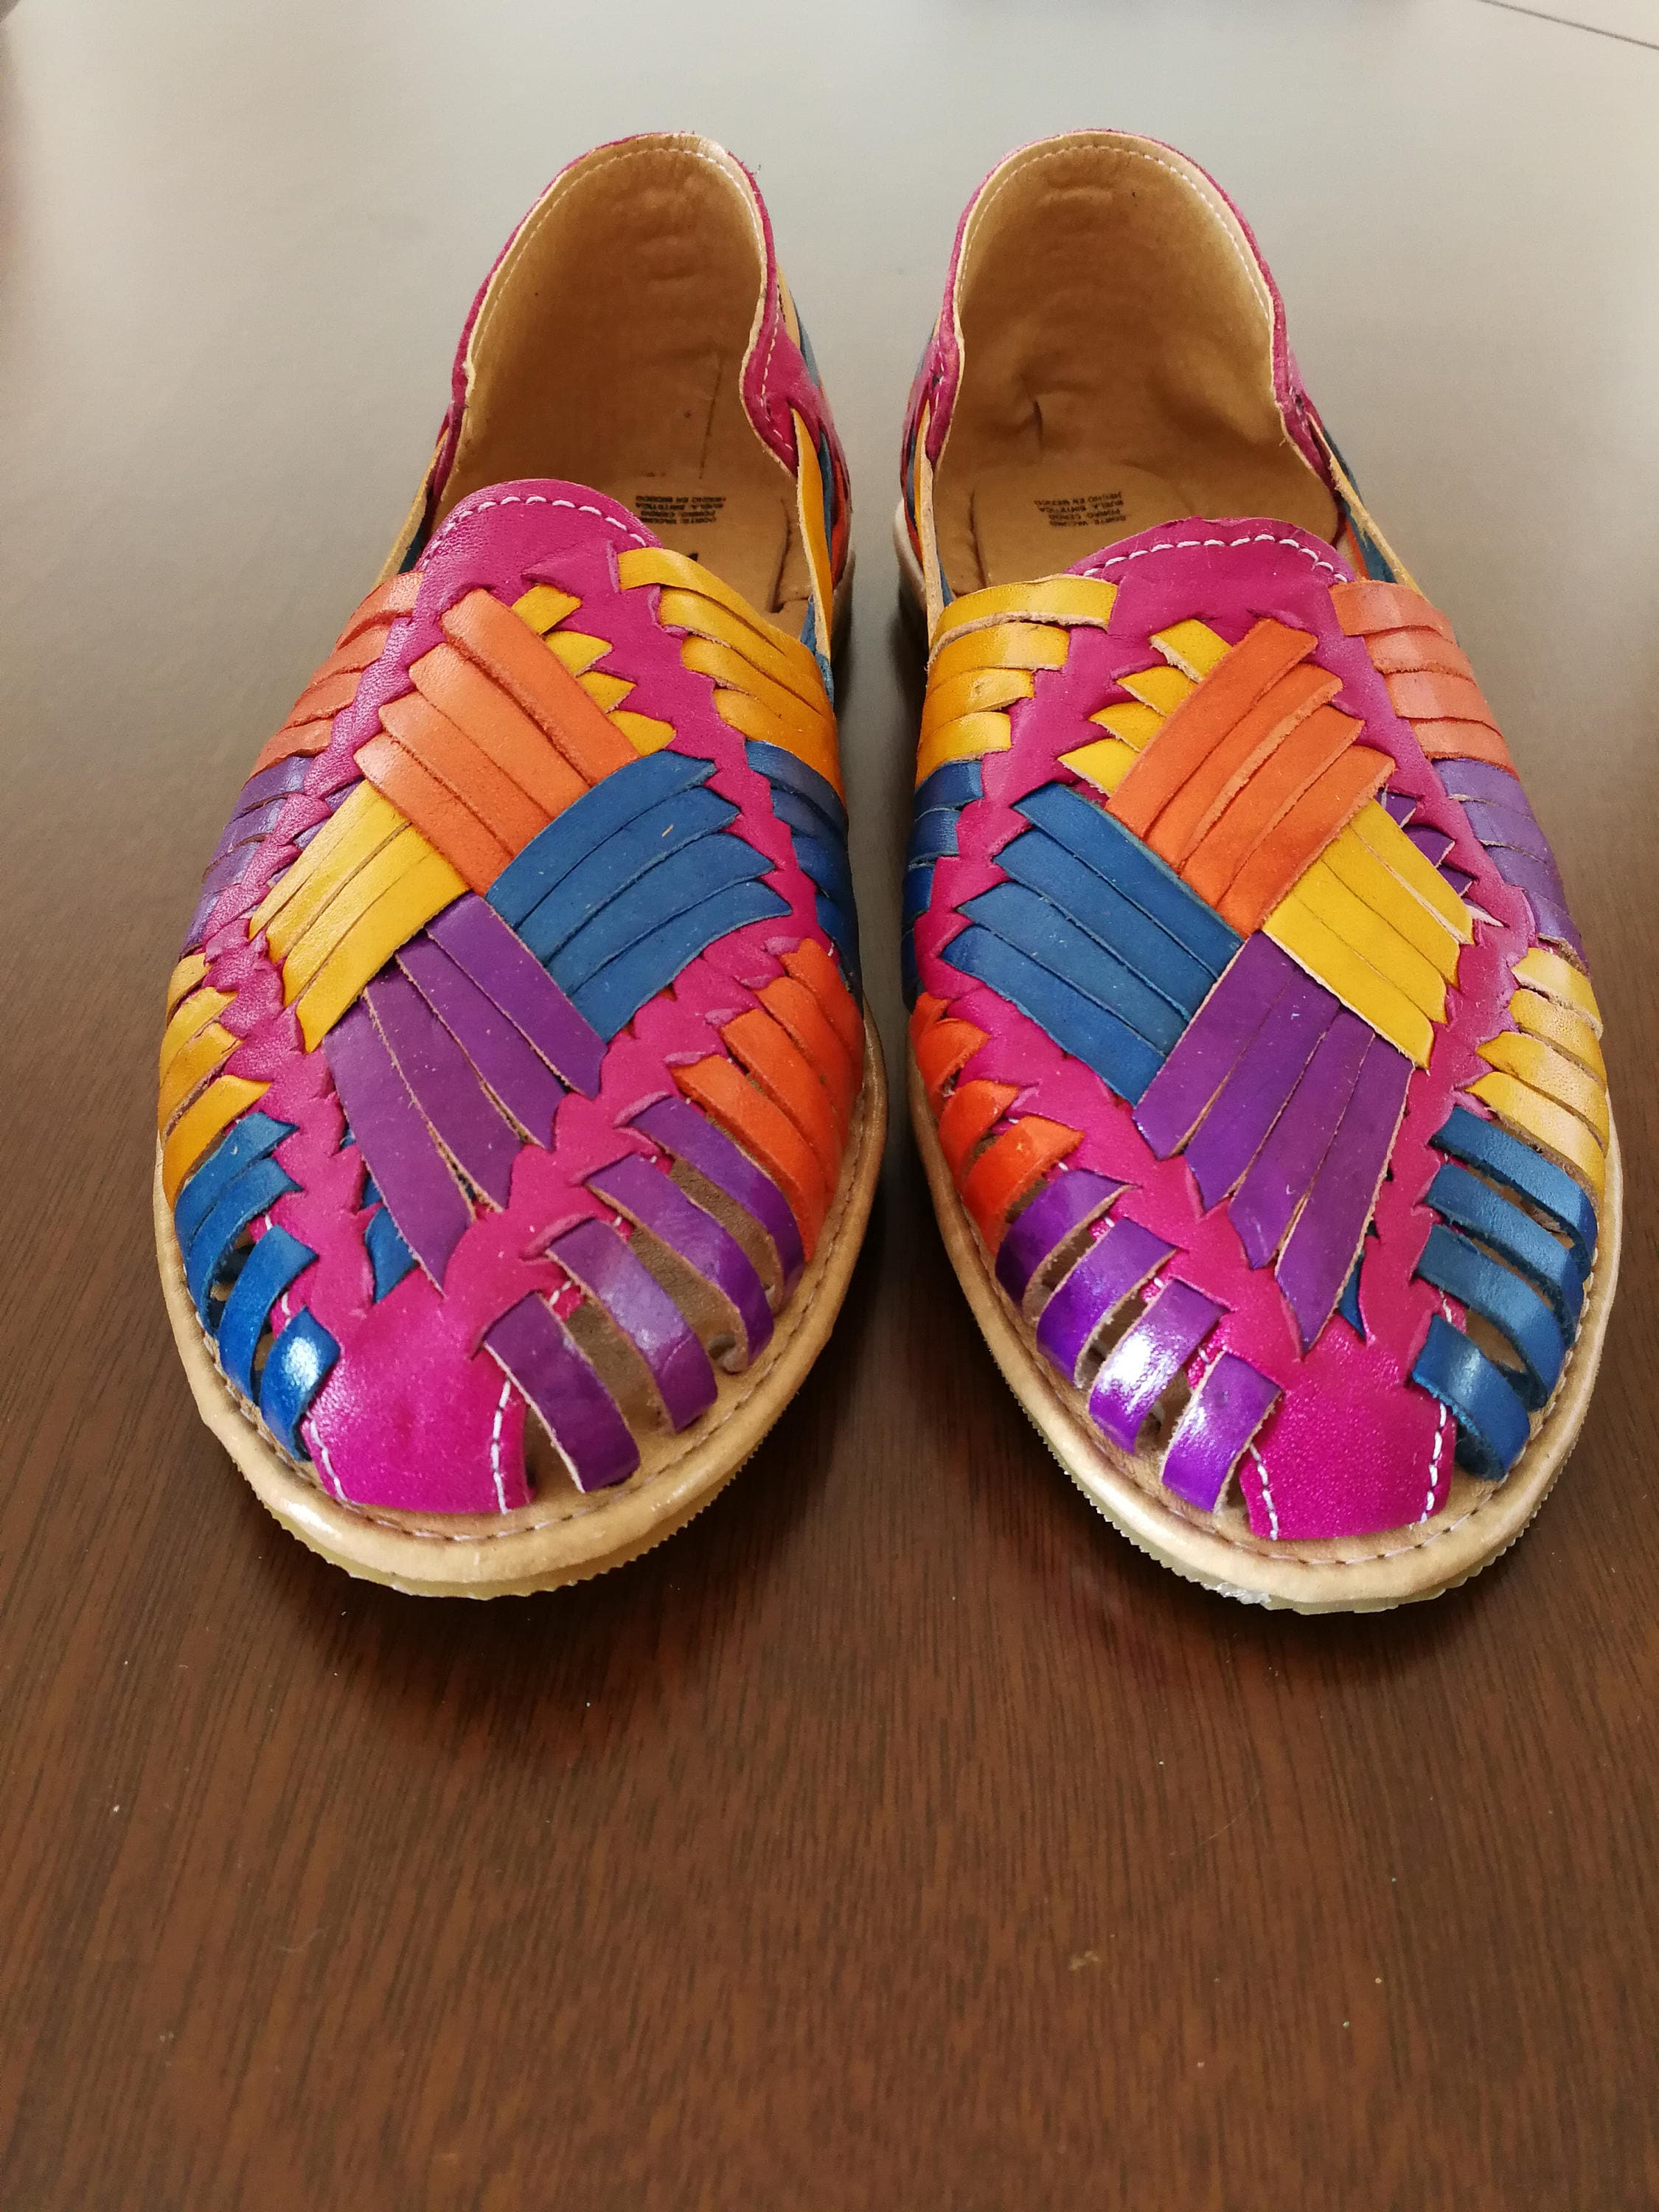 Mexican Sandals Mexican Huaraches Sandals Mexican Shoes Us